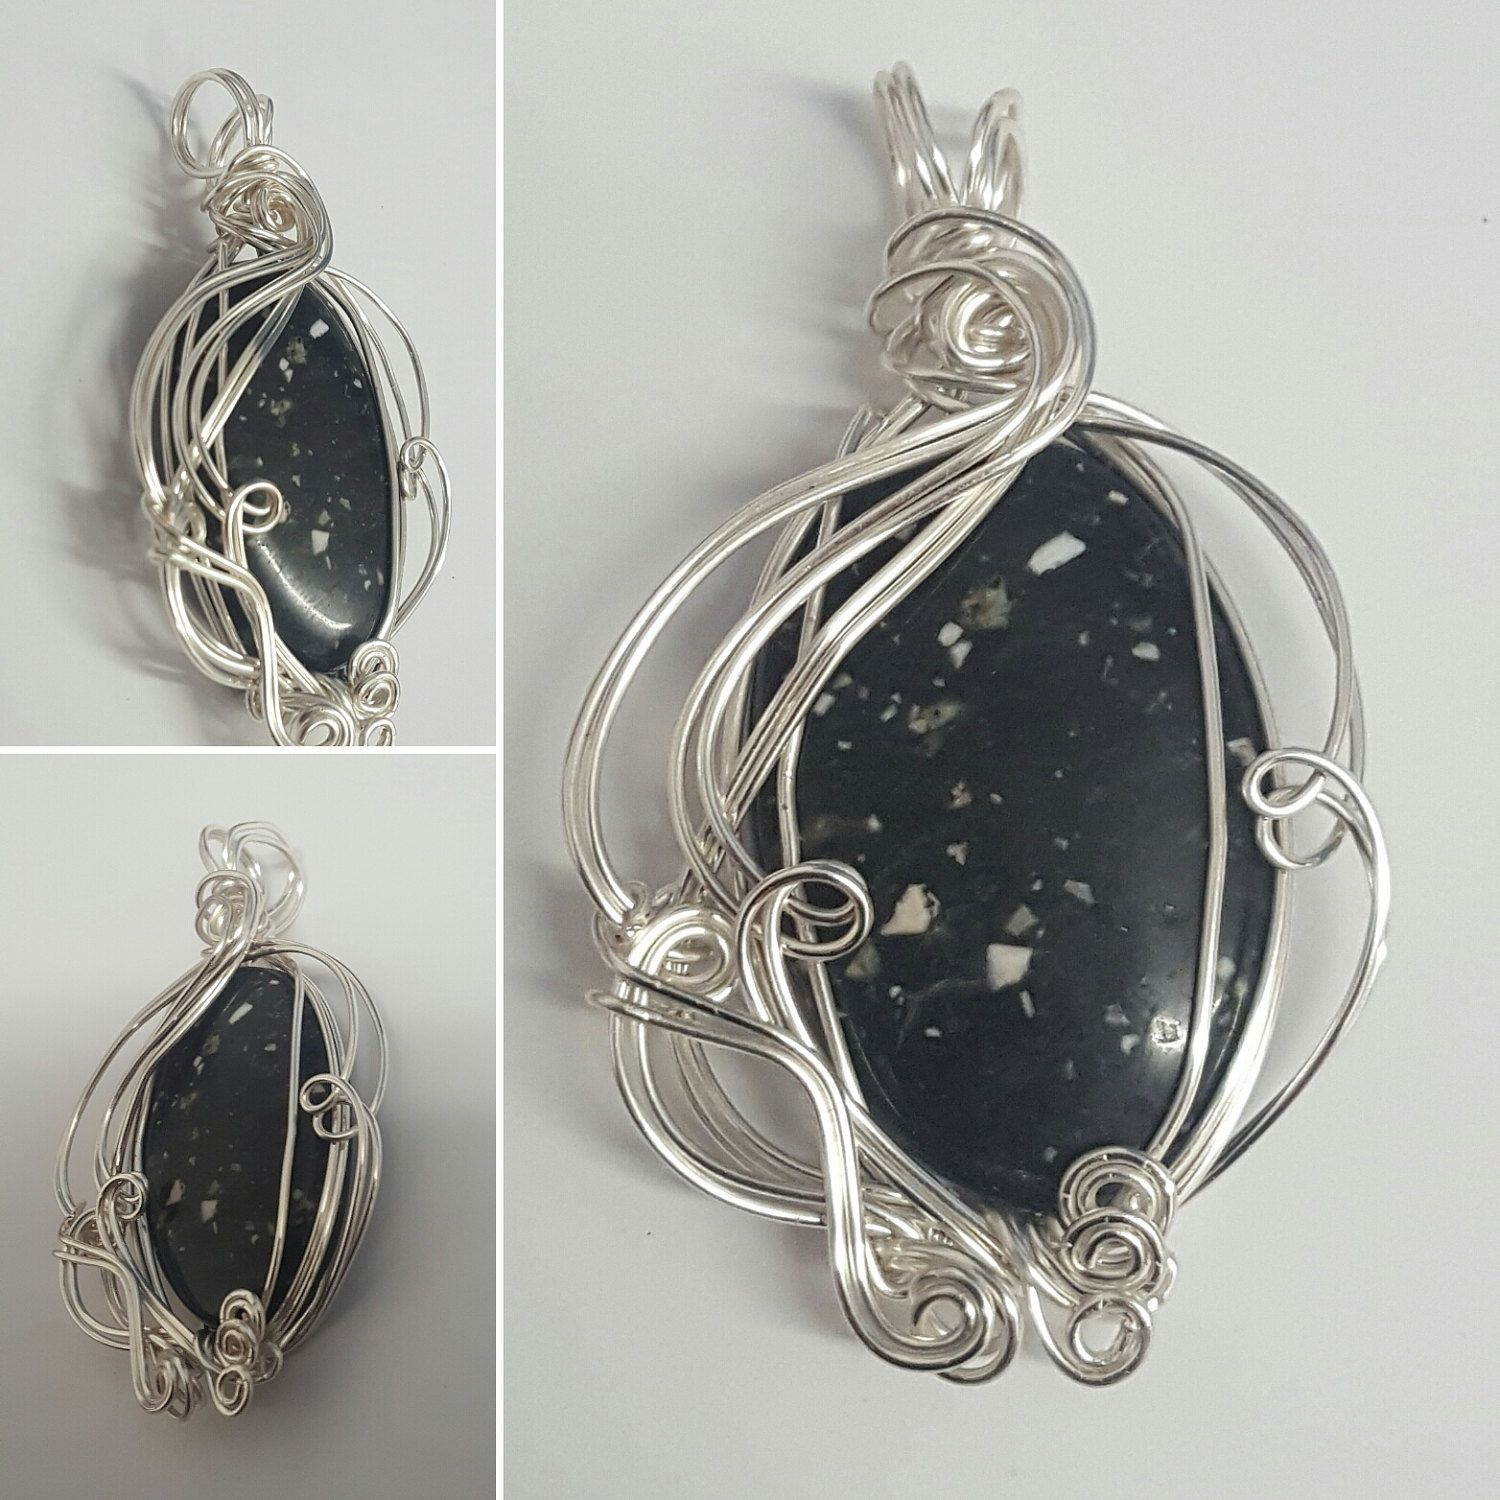 starlight quartz cabochon set in layers of swirling silver plated wire in this lovely feature pendant by YouNiqueYou on Etsy